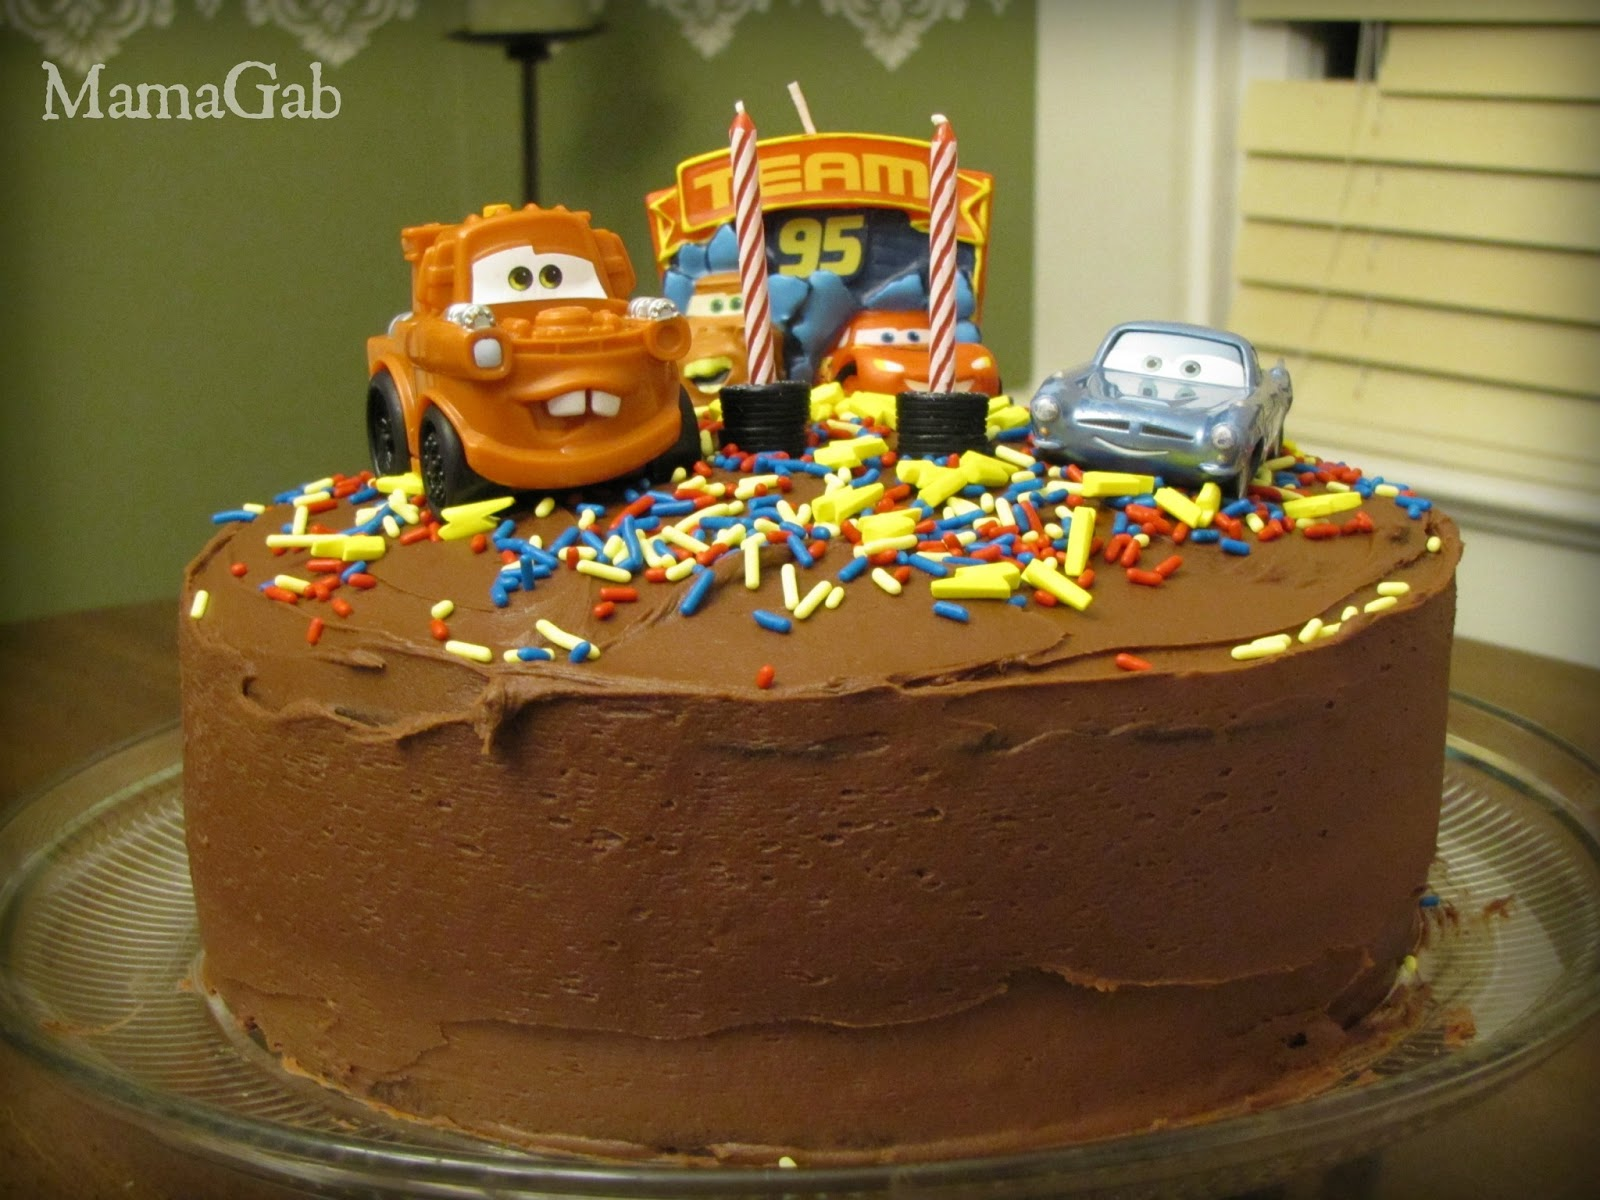 Making Birthday Cakes At Home An Easy Cars Cake Living With Food